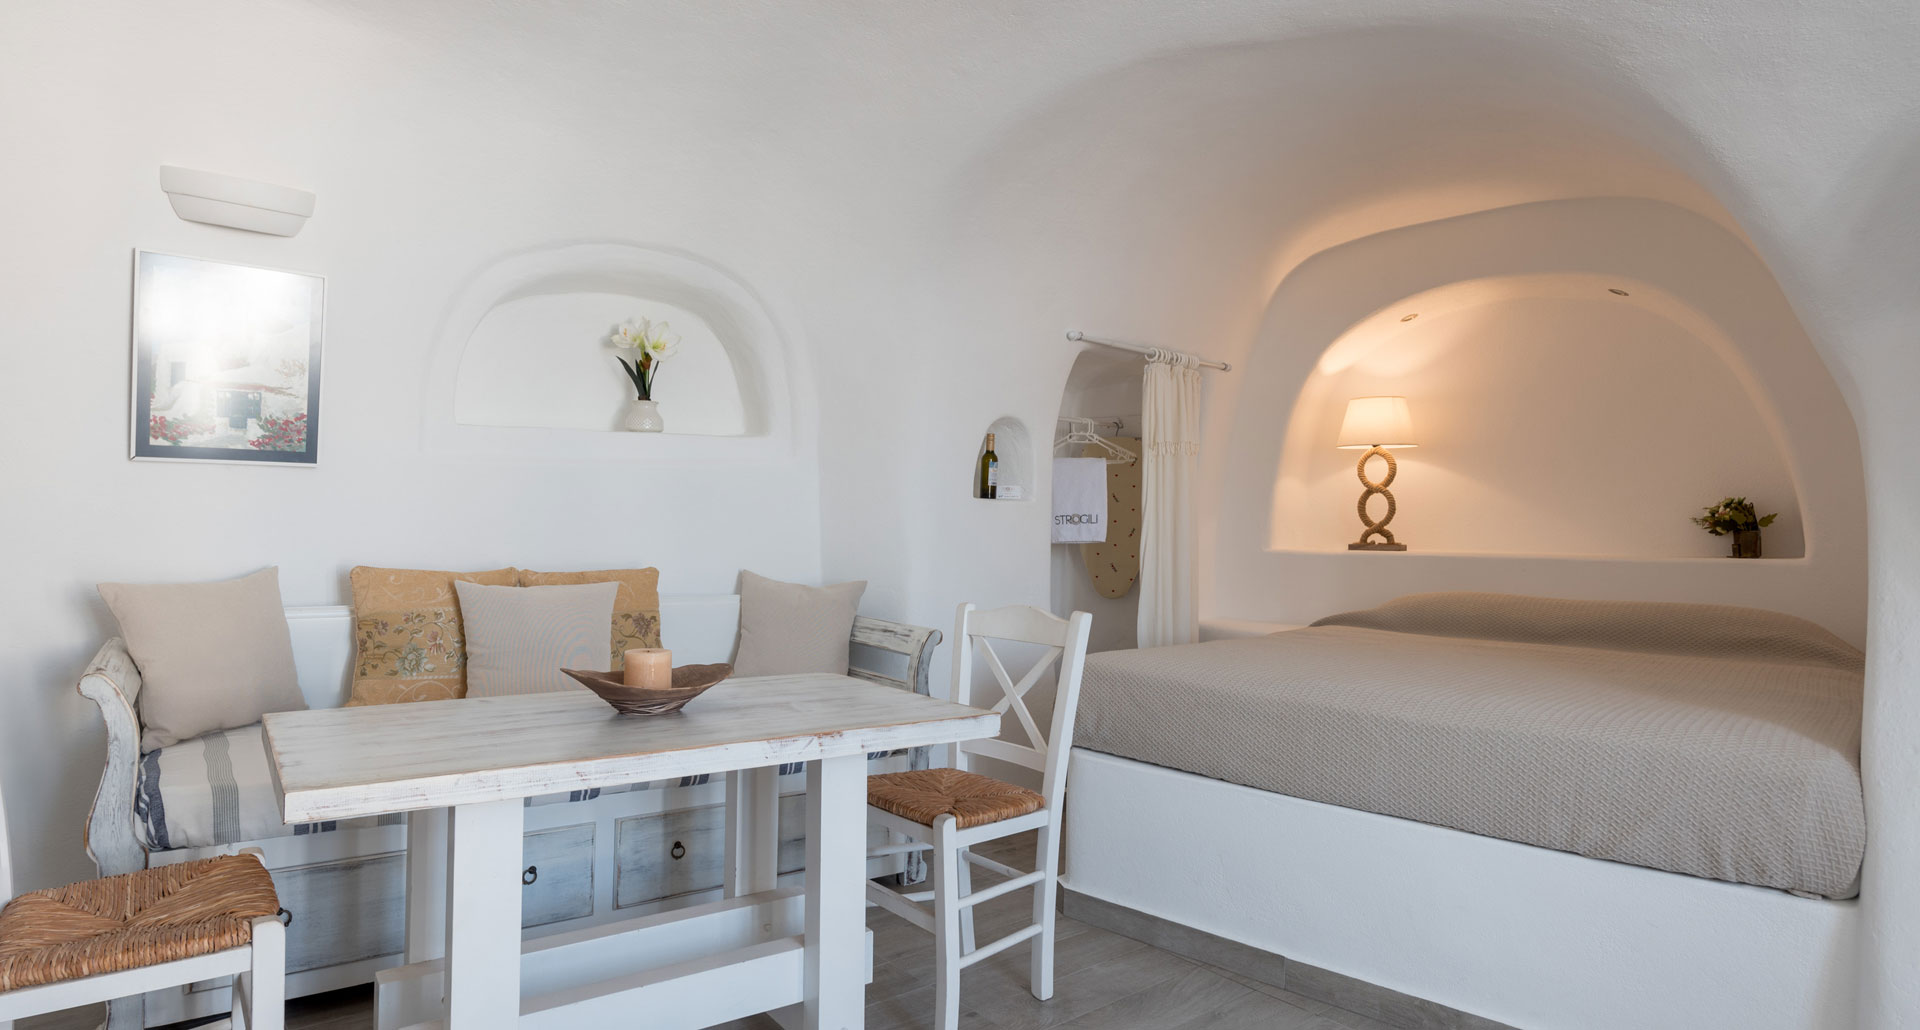 Superior Rooms in Oia Santorini